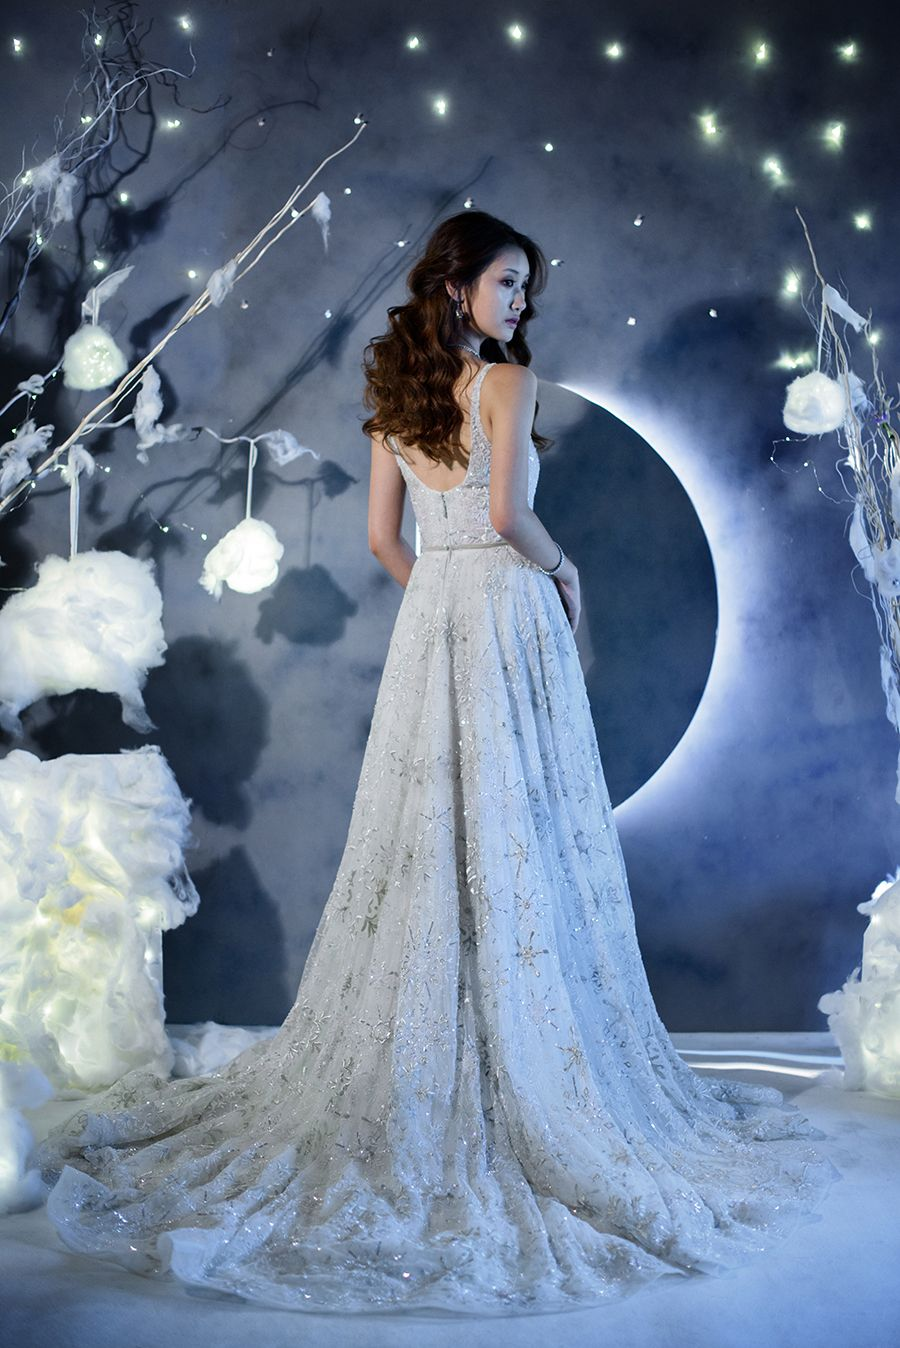 Winters Night Wedding Inspiration With 3 Paolo Sebastian Gowns In